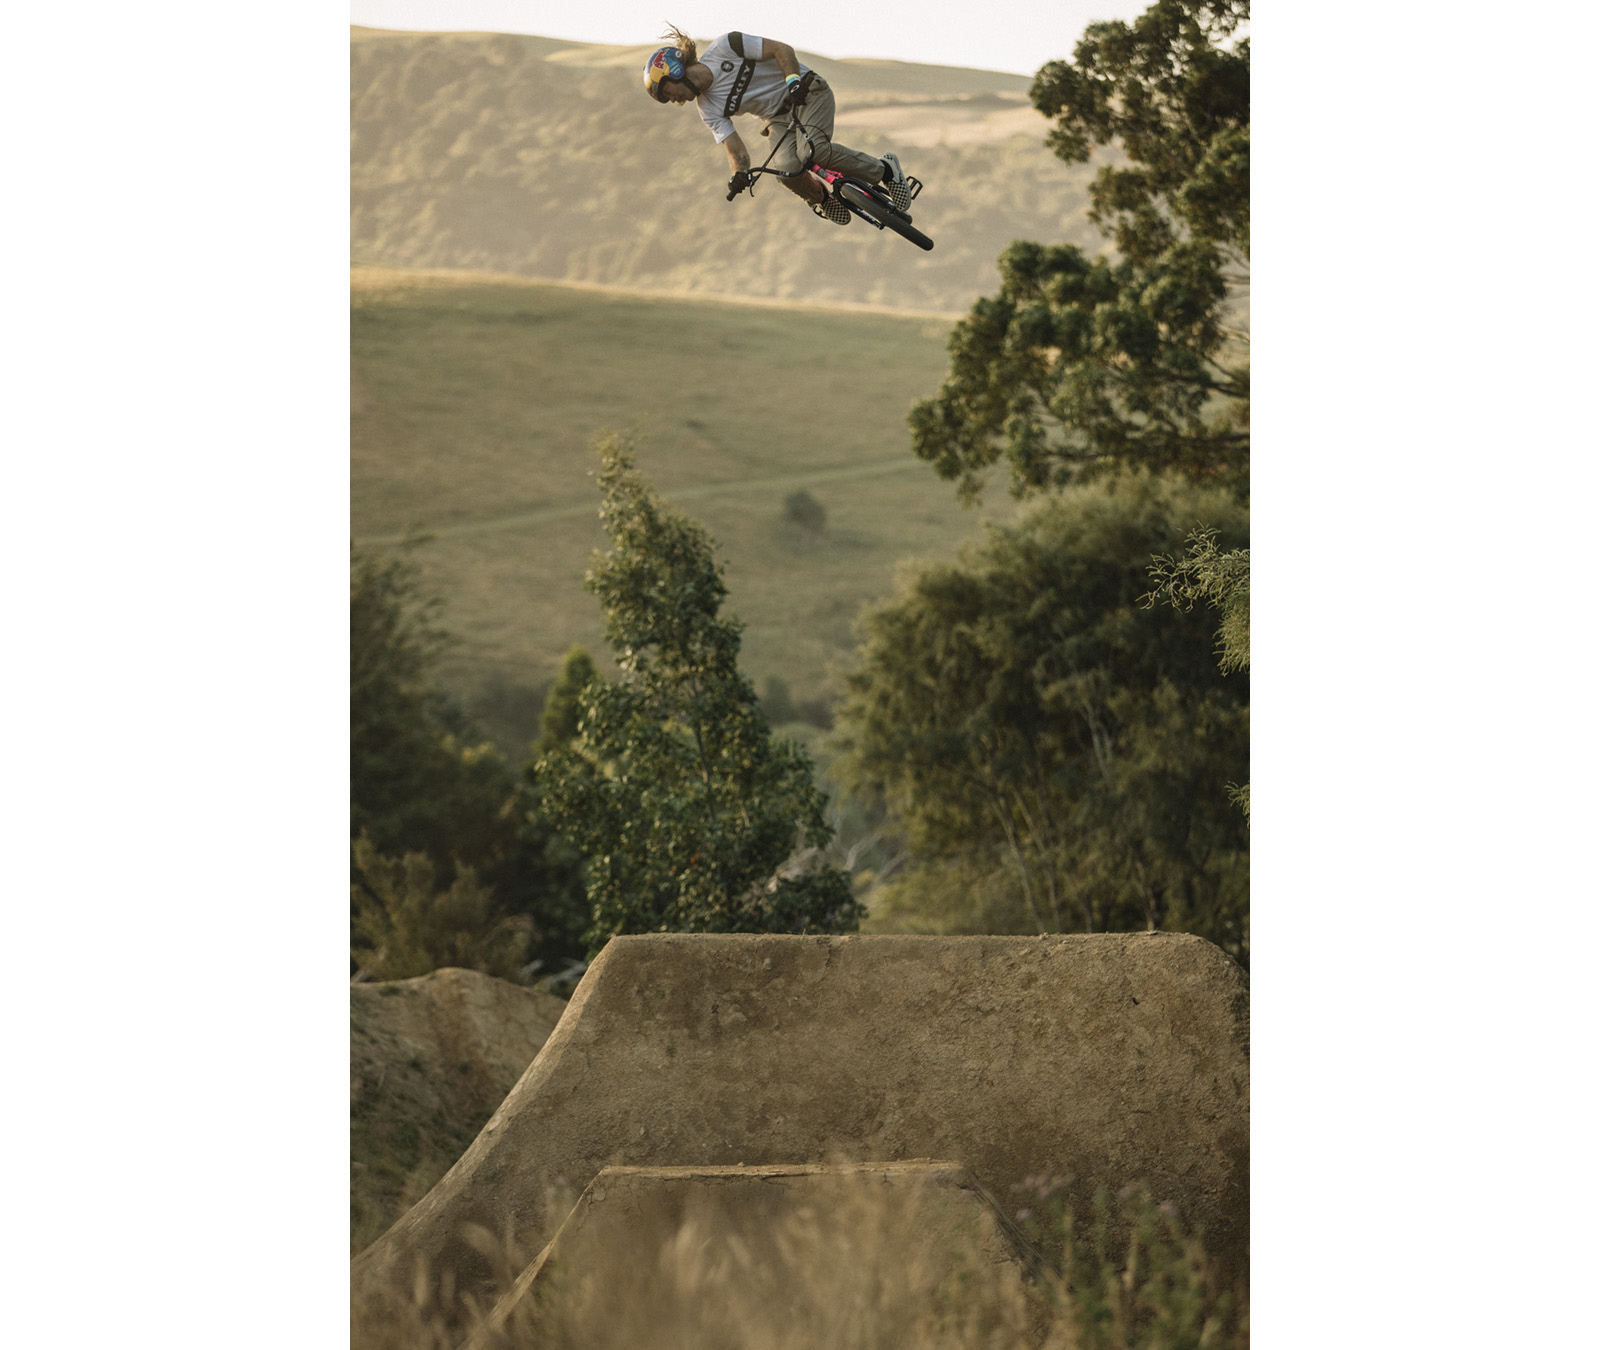 Mike Hucker at the Frew s Farm Jam 2020 Otapiri Gorge New Zealand